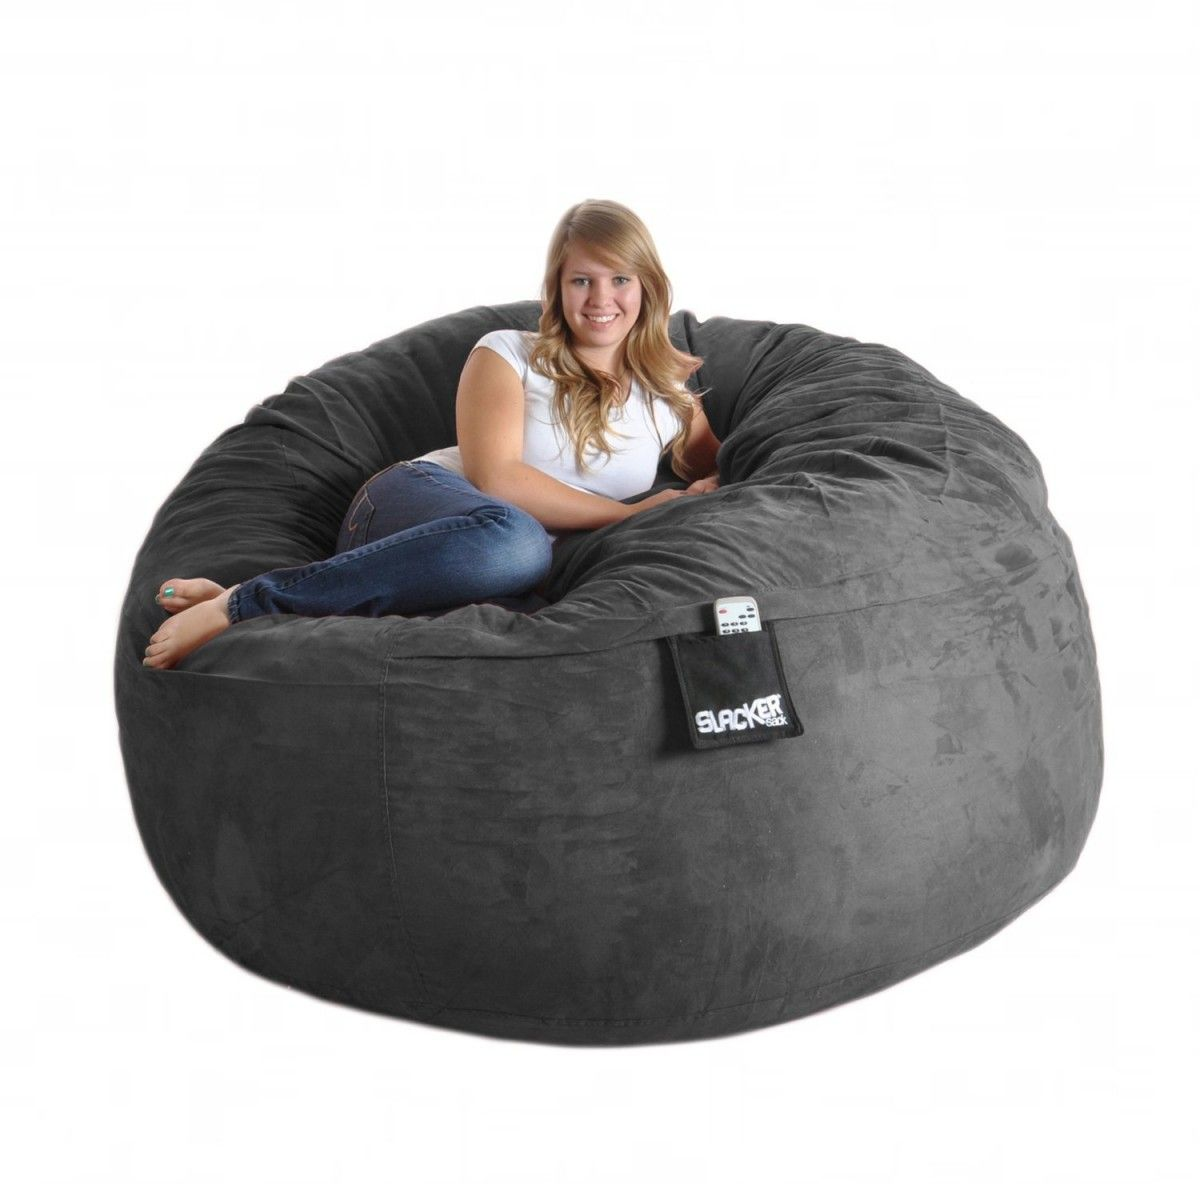 Oversized Bean Bags Chairs Making Oversized Bean Bag Chairs Foam Padding Http Www